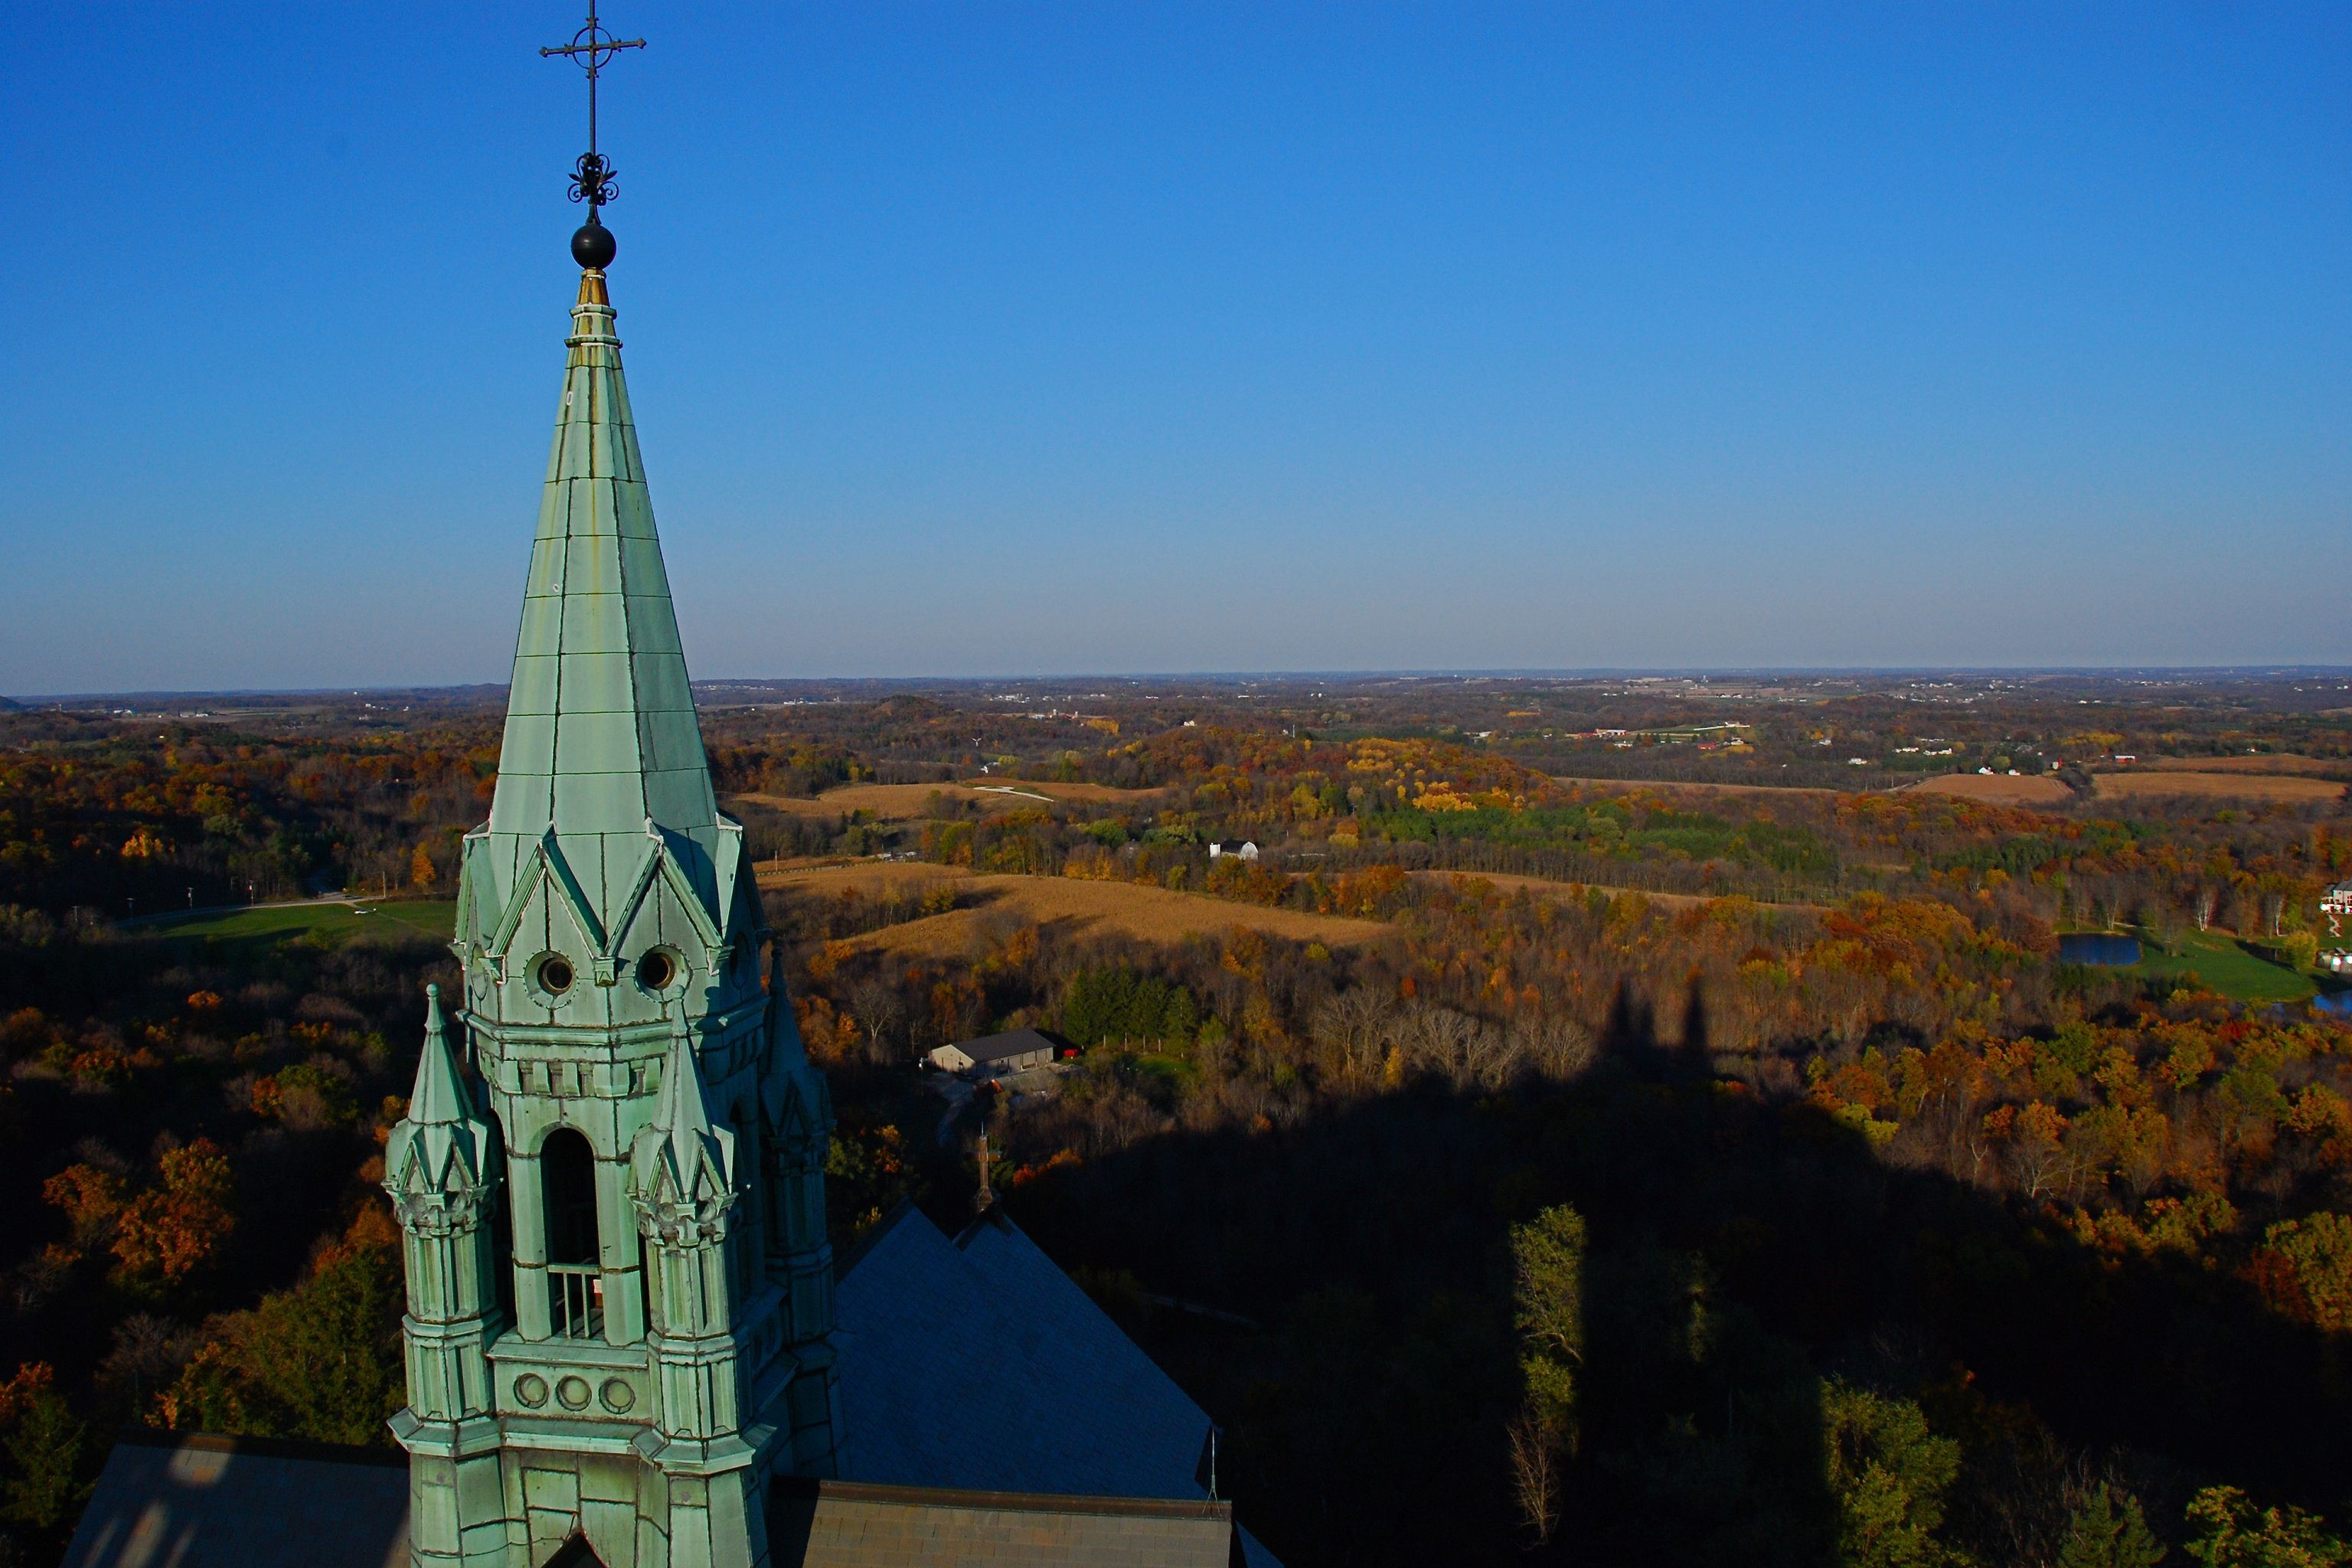 Holy Hill Steeple, photo courtesy of Donald S. Abrams